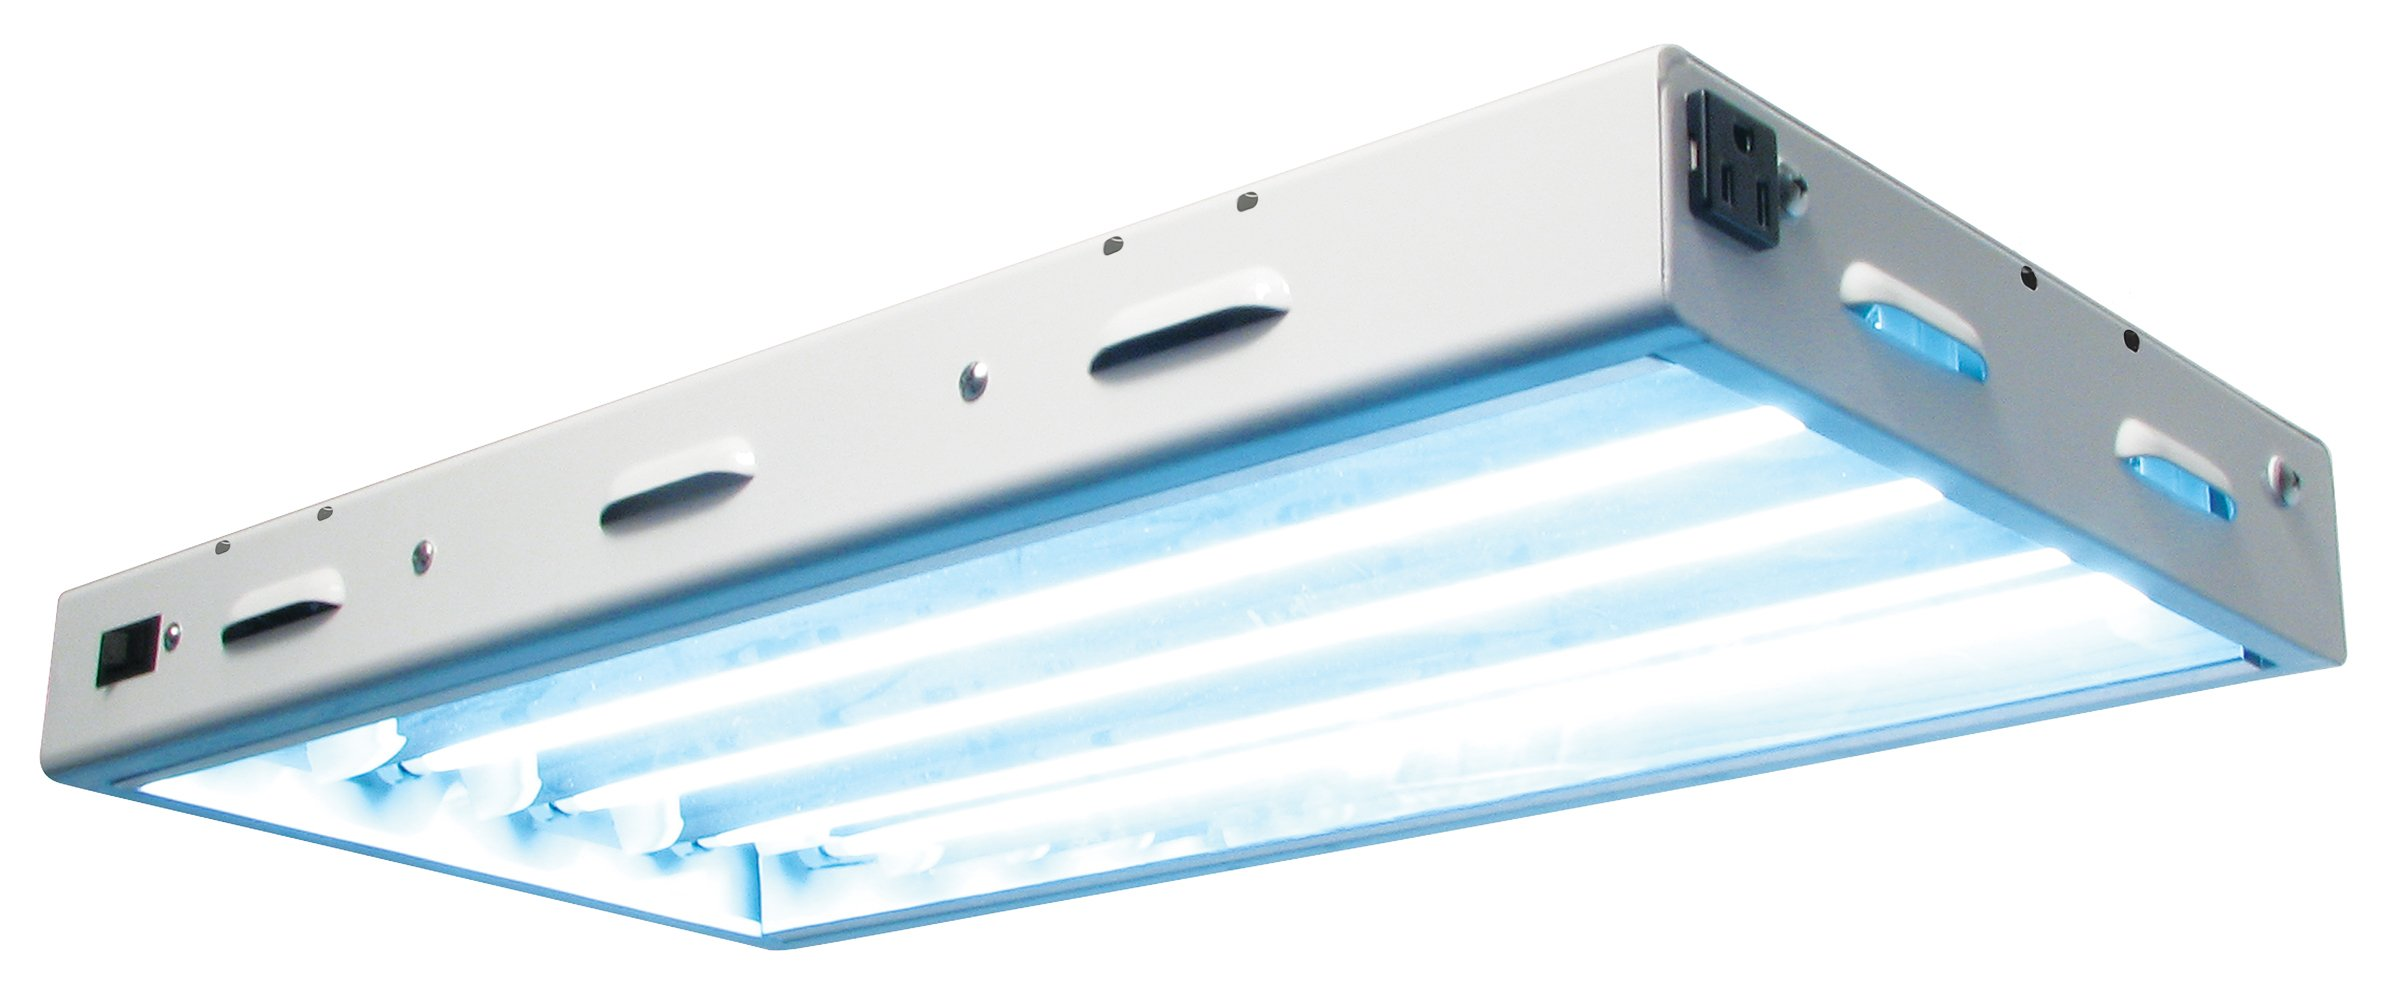 Sun Blaze T5 Fluorescent - 2 ft. Fixture | 4 Lamp | 120V - Indoor Grow Light Fixture for Hydroponic and Greenhouse Use